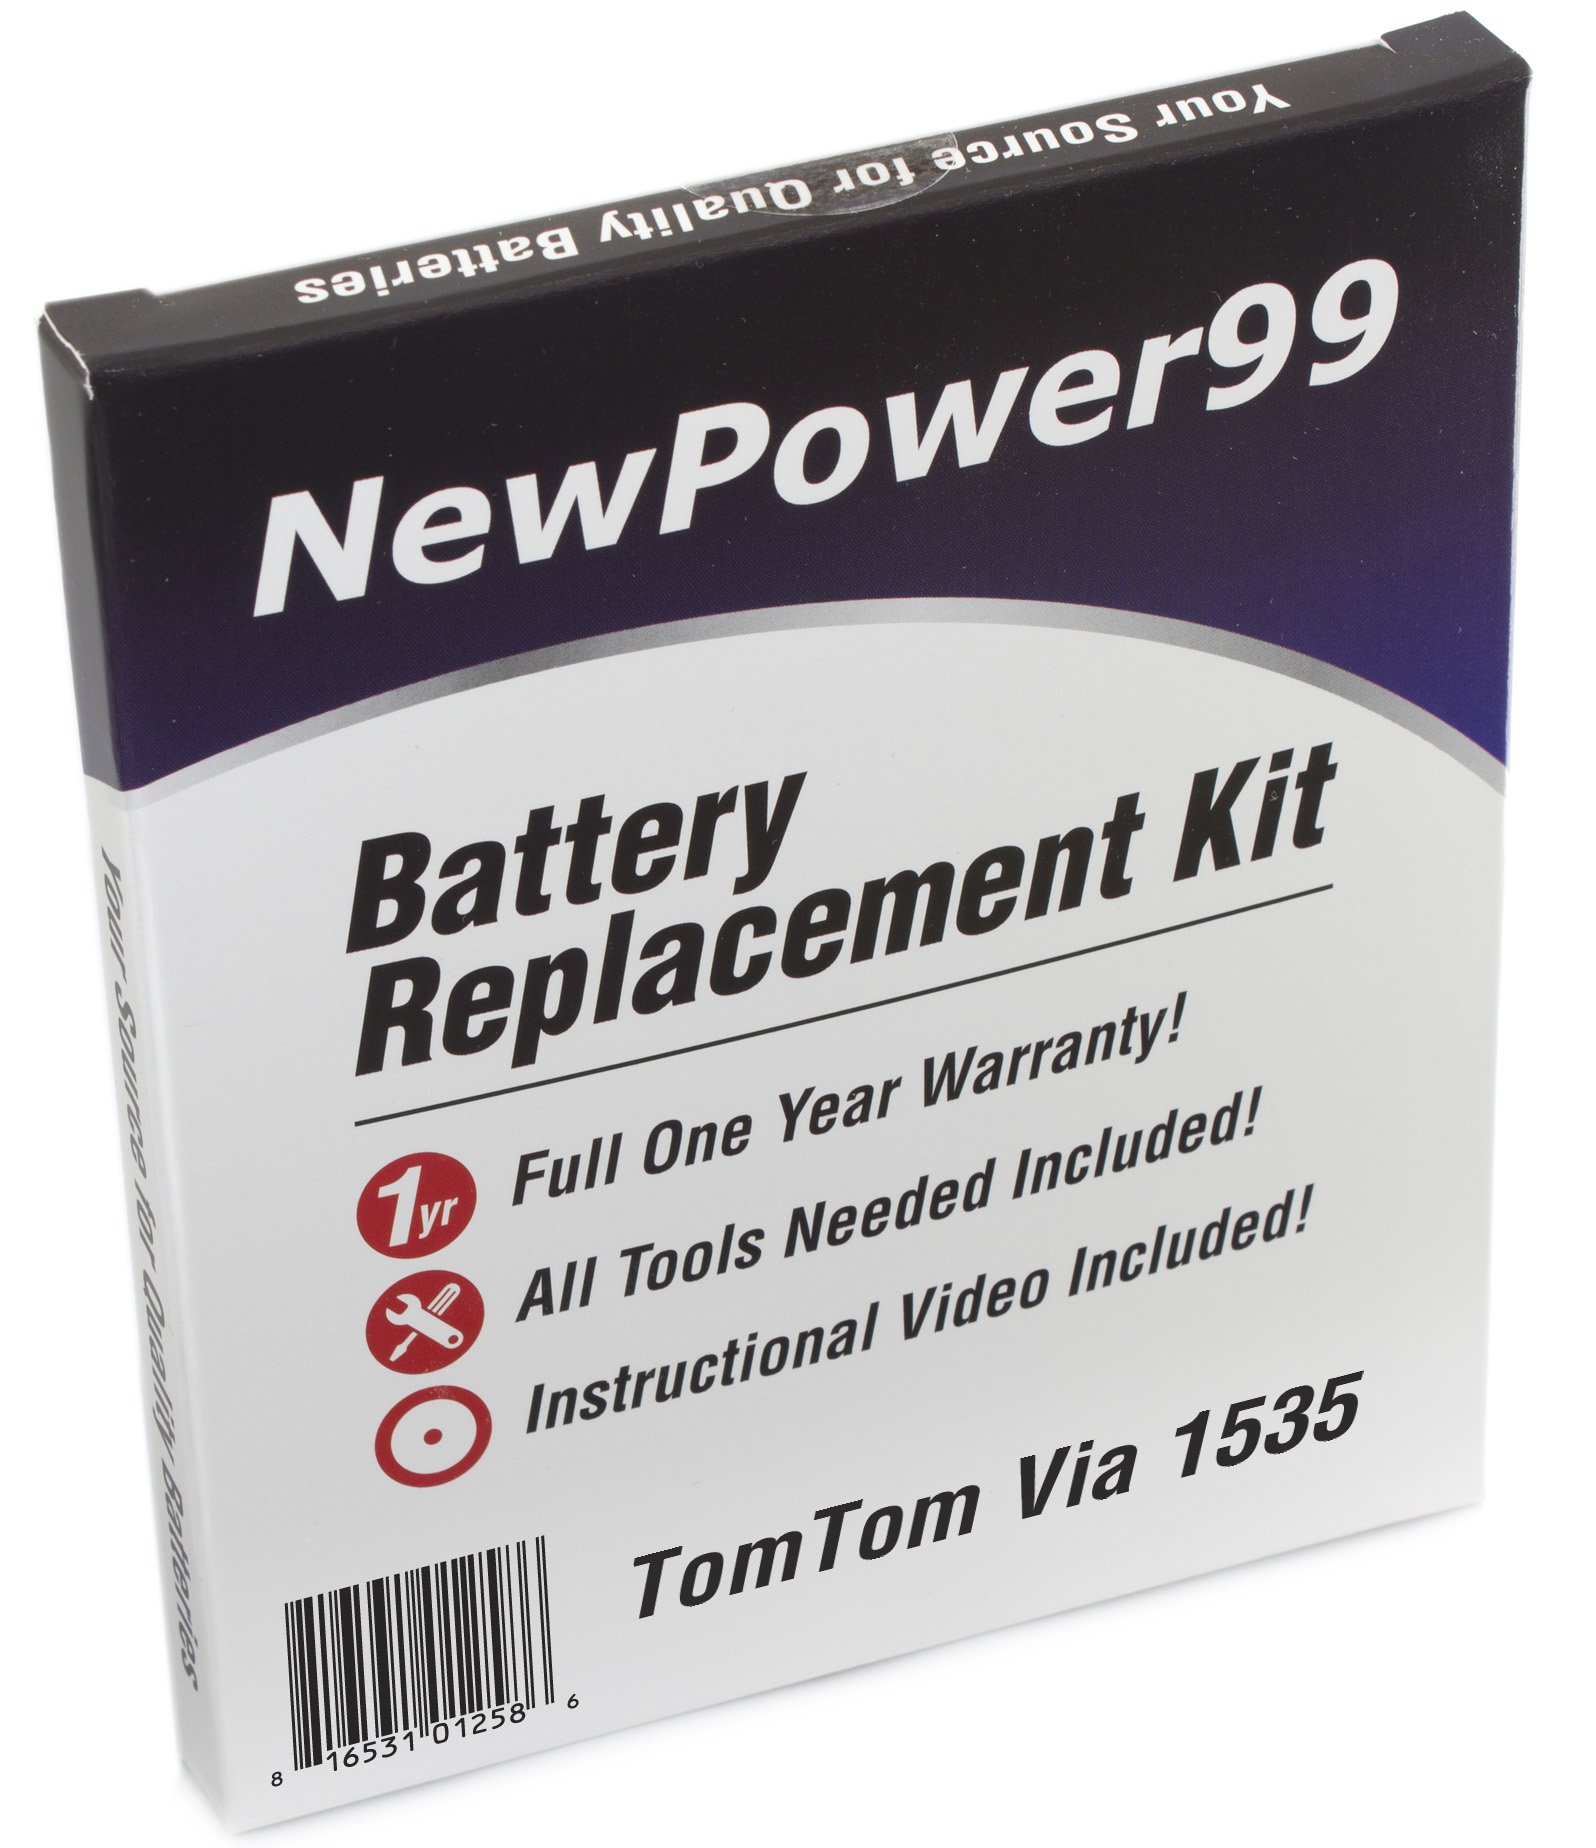 TomTom Via 1535 Battery Replacement Kit with Installation Video, Tools, and Extended Life Battery.